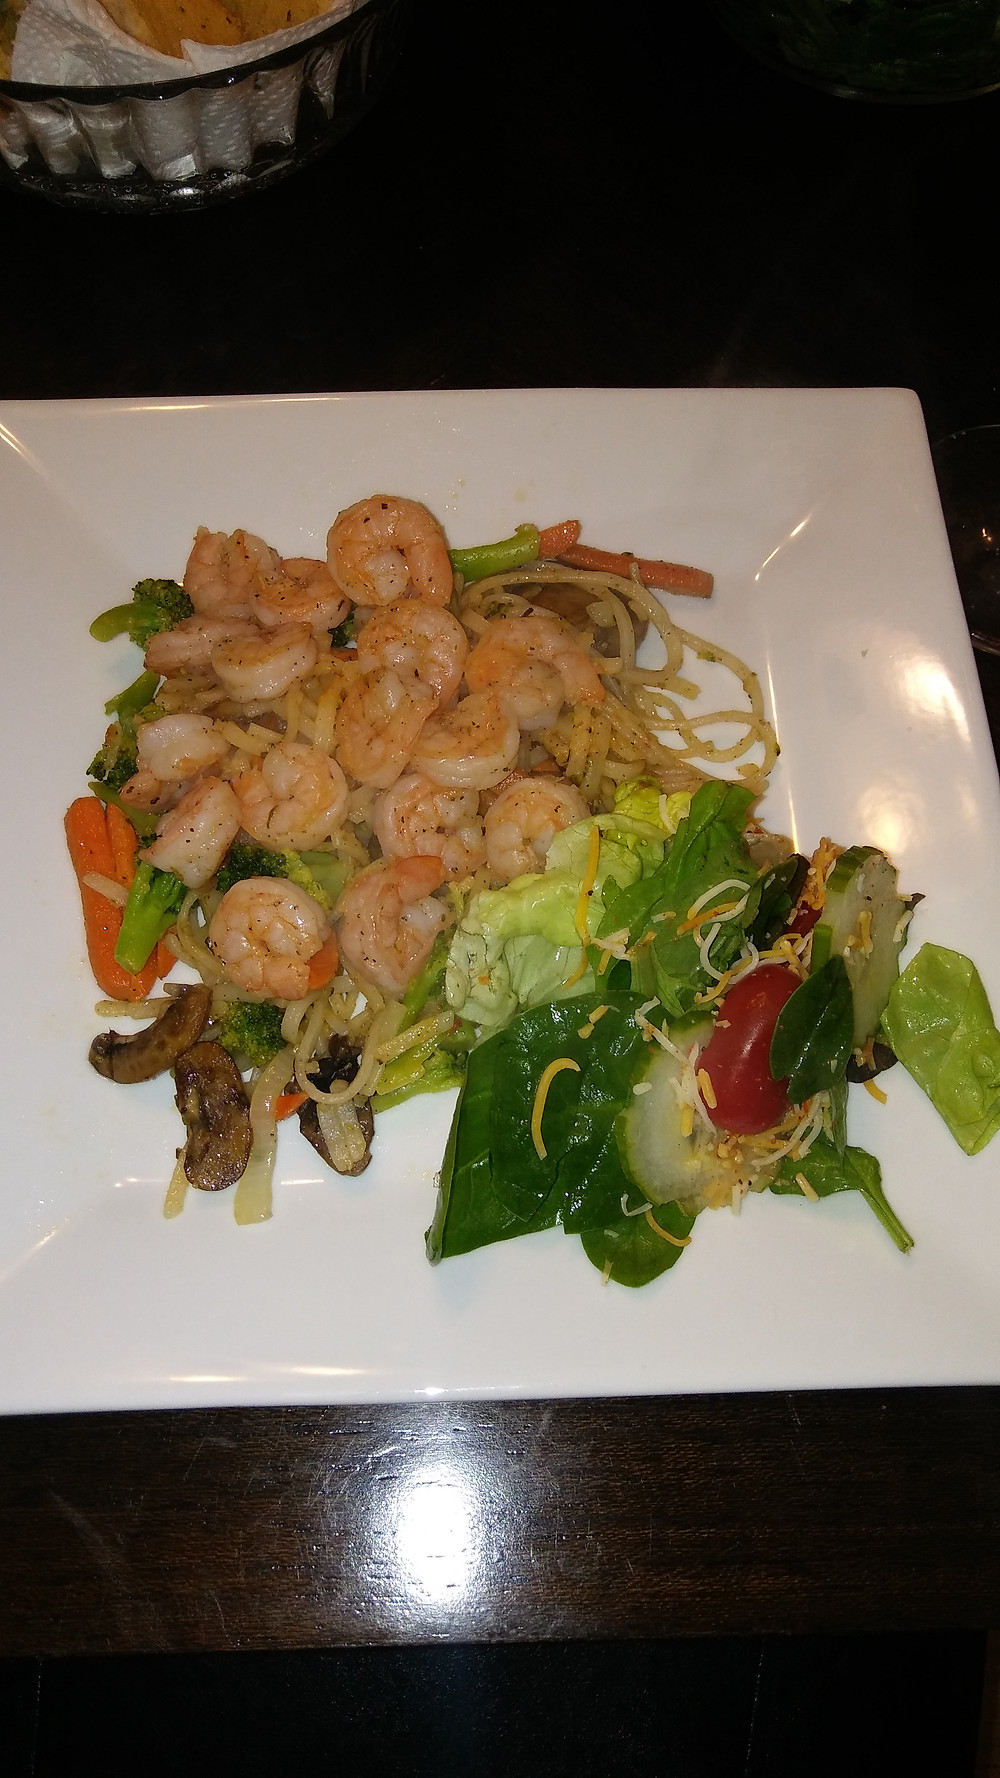 Shrimp and Thai rice noodles with mushrooms, carrots and a side salad